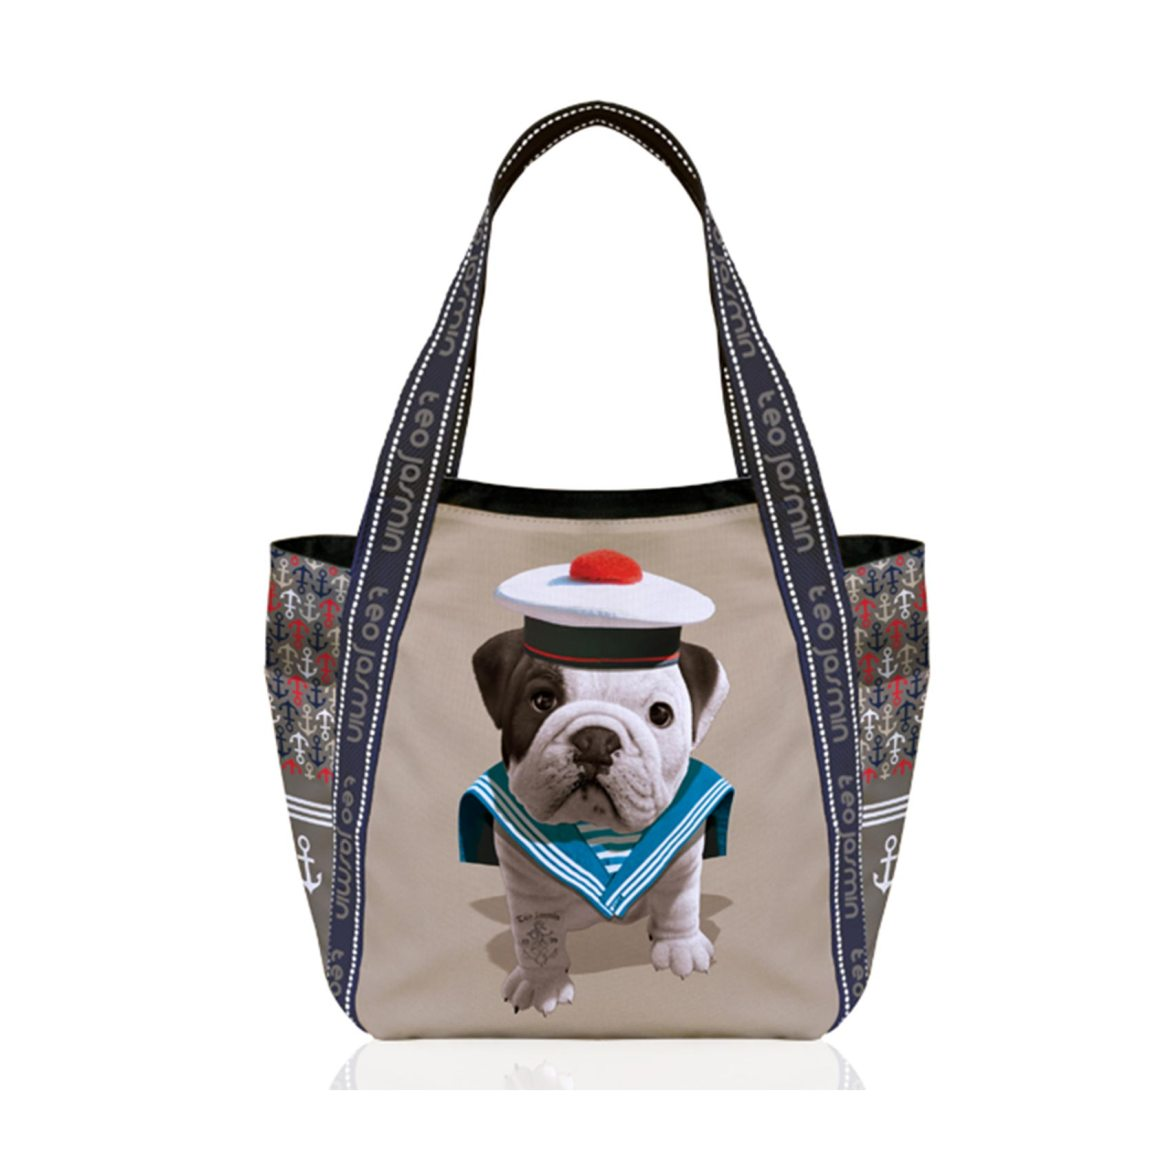 sac-a-main-chien-teo-jasmin-sailor-beige